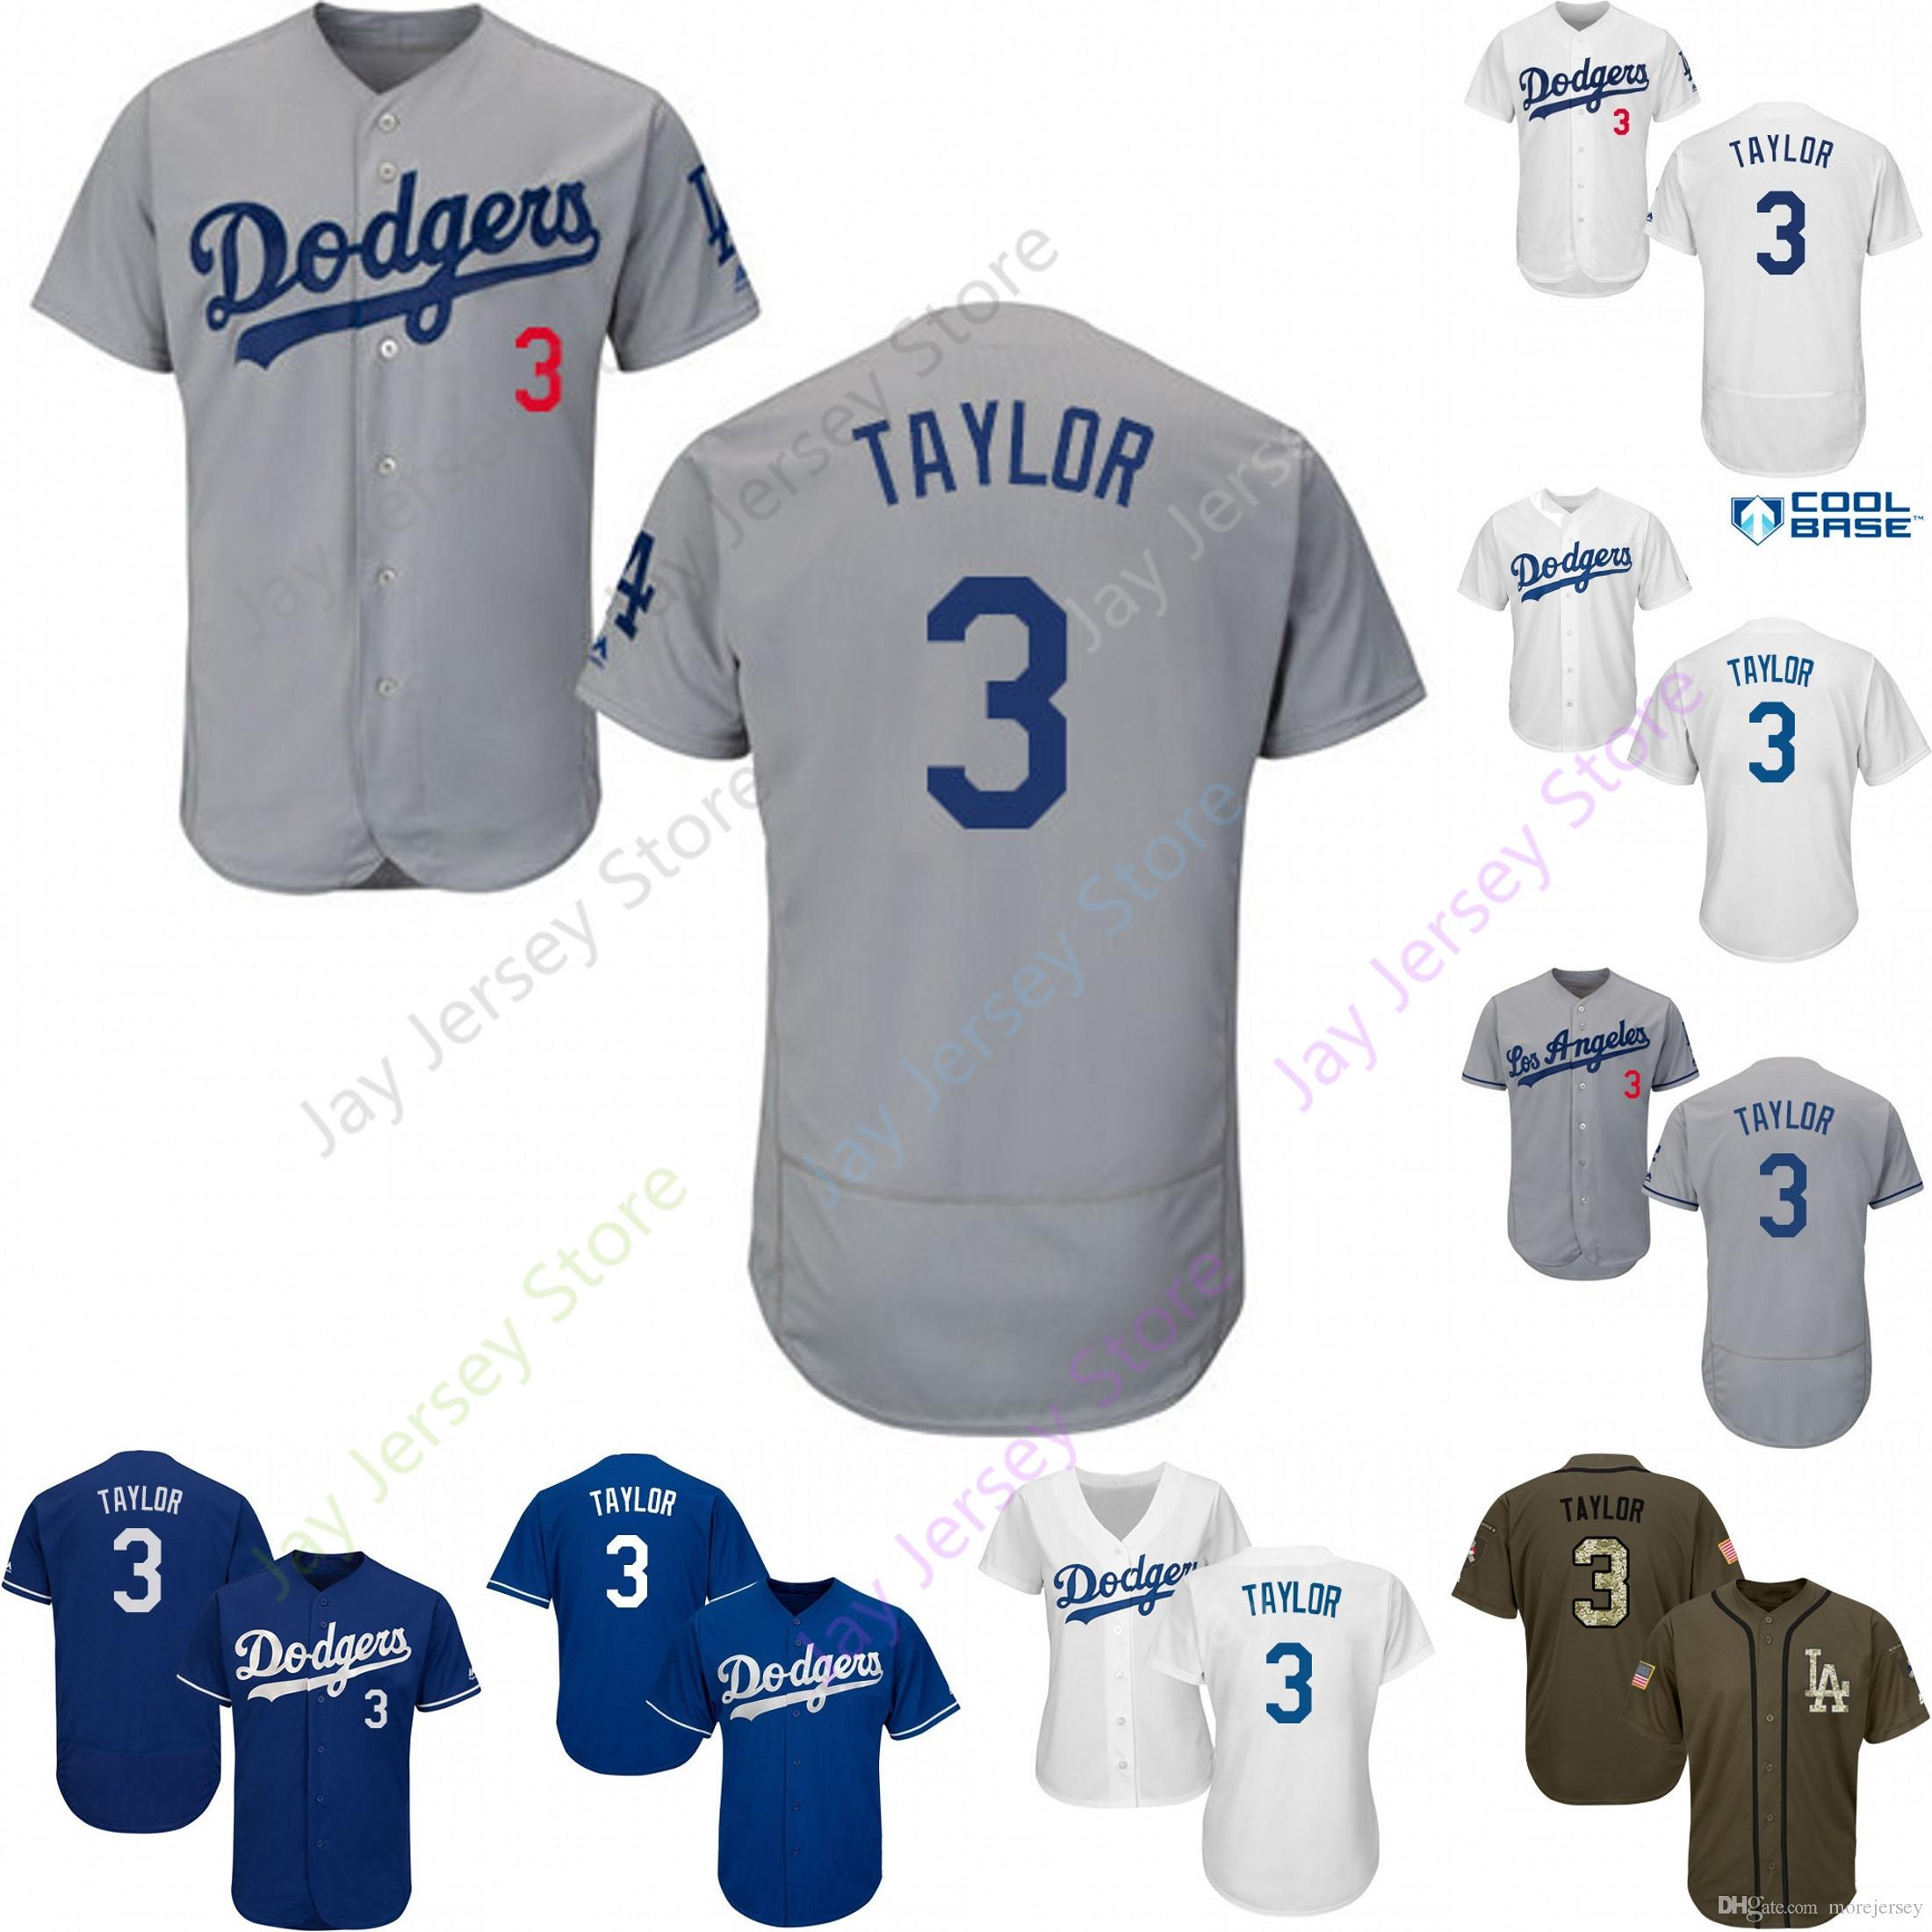 sale retailer 6515f 20eac 2019 Los Angeles 3 Chris Taylor Jersey Dodgers Jerseys Cool Base Flexbase  Home Away White Black Red Grey Pullover Button Men Women Youth